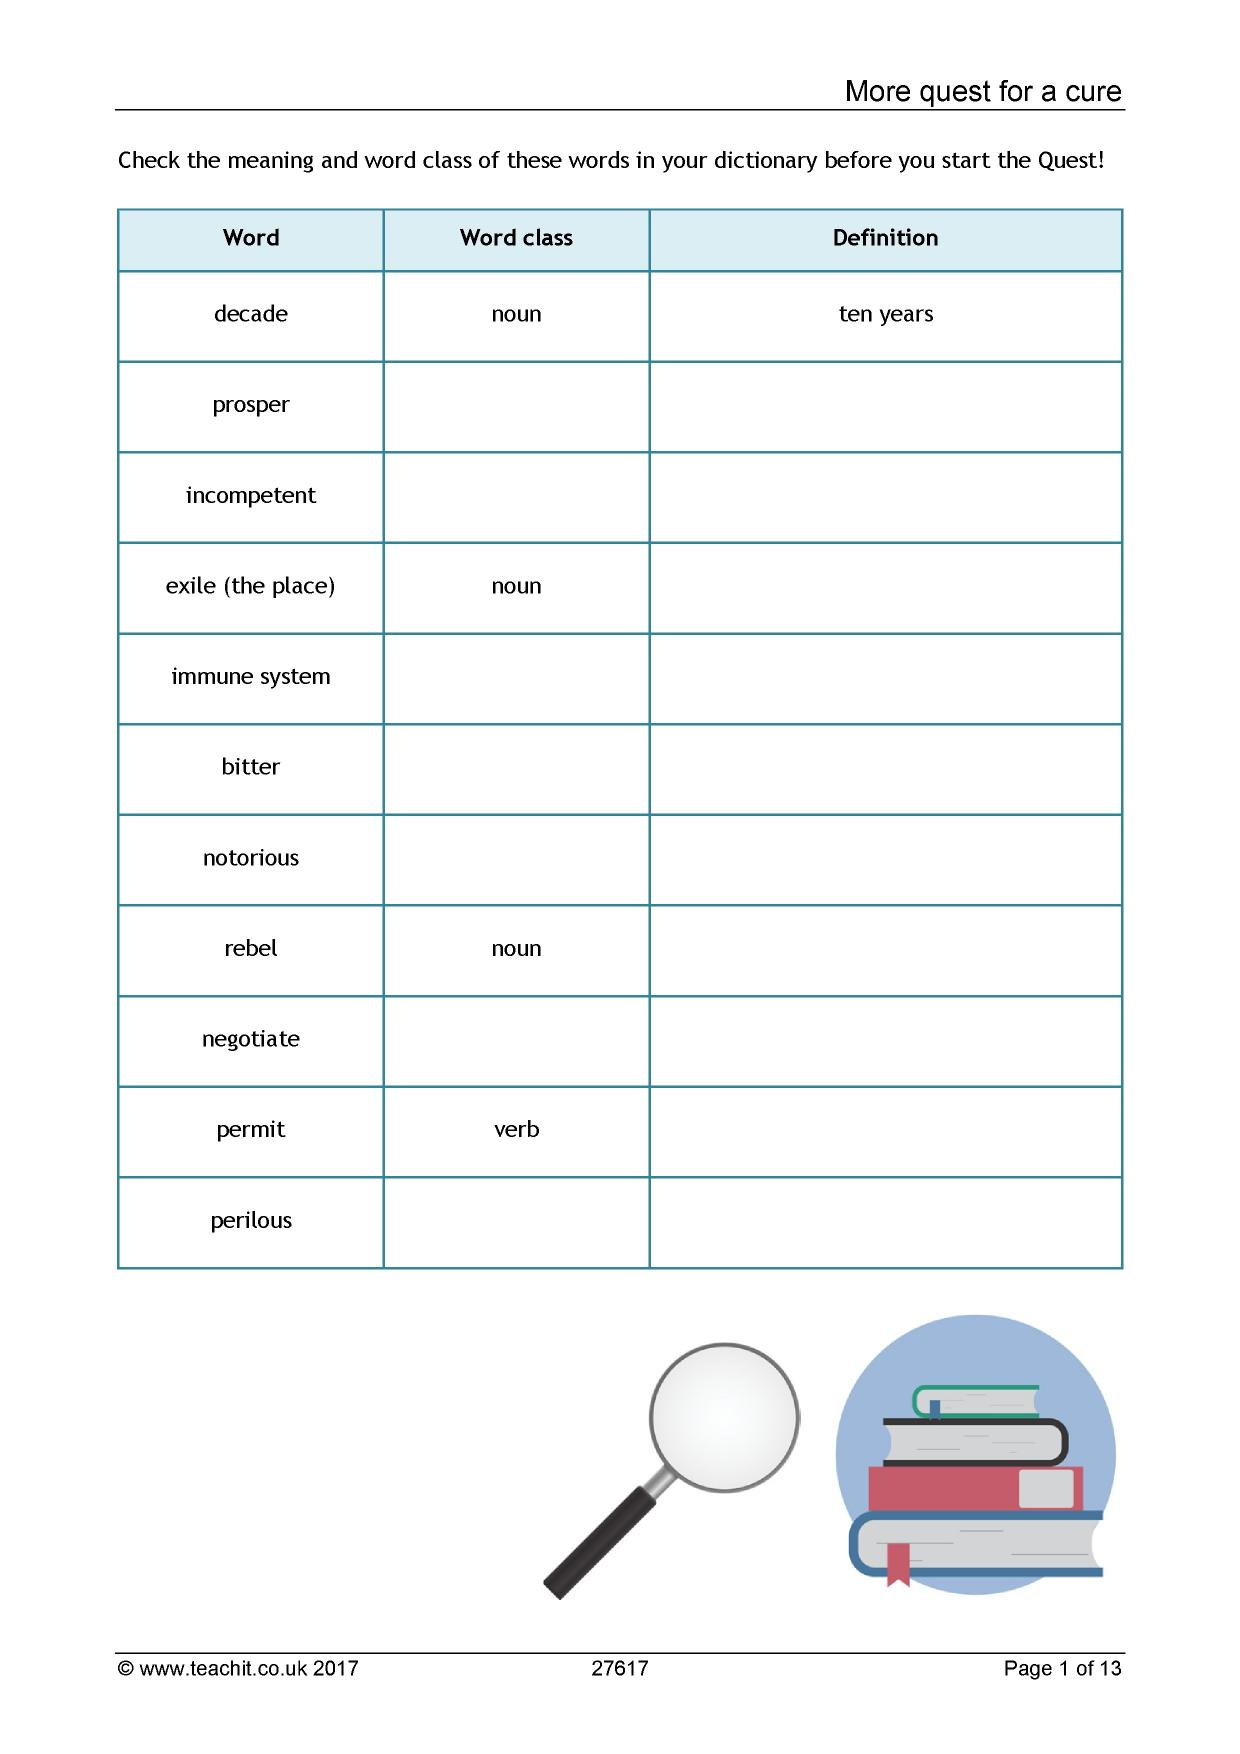 Creative writing resources ks3 ks3 11 14 year oldsand contains many worksheets for activities including vocabulary and punctuation use as well as descriptive and creative writing ibookread Download